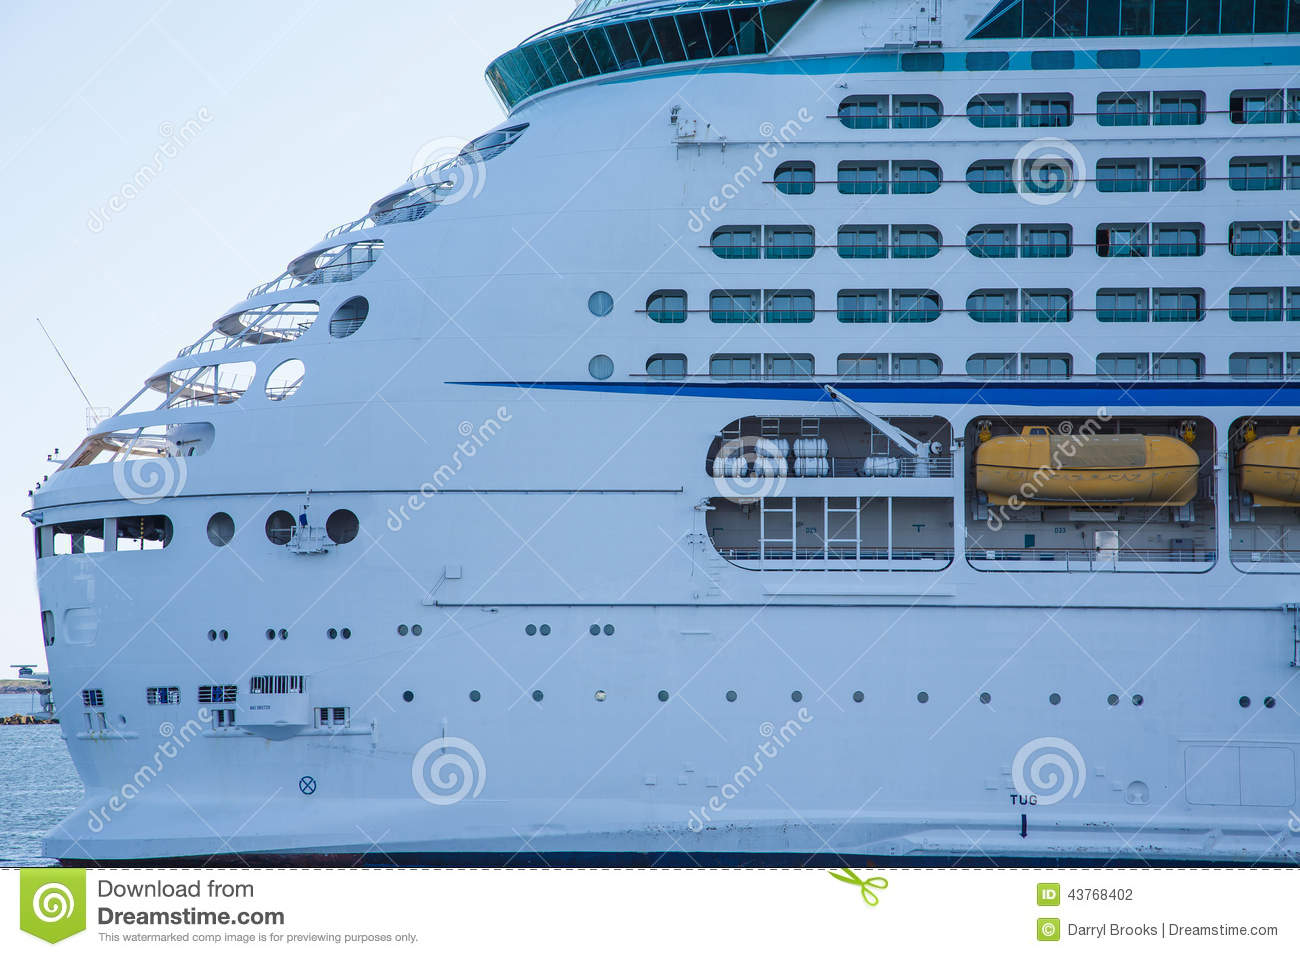 Aft Decks Of Luxury Cruise Ship Stock Photo Image - What is aft on a cruise ship